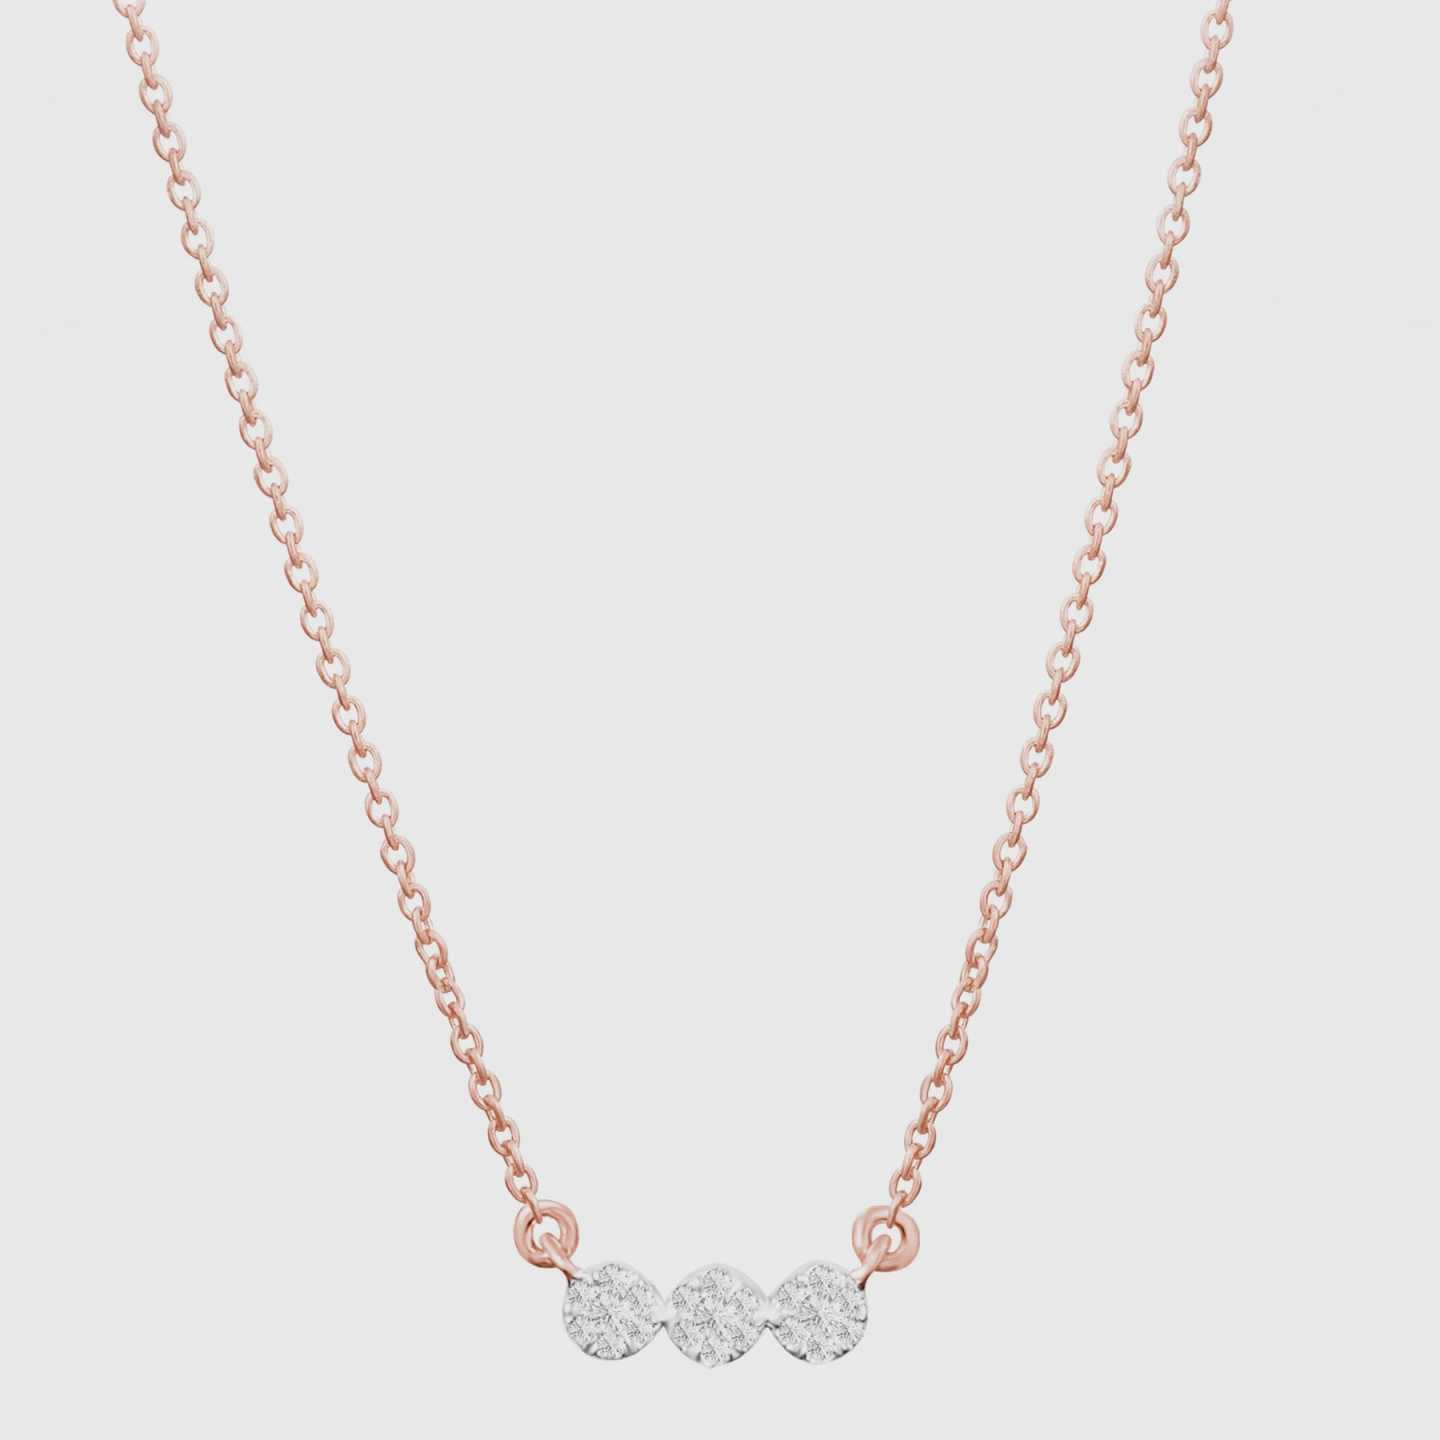 Three Diamond Cluster Necklace - 12759526146159